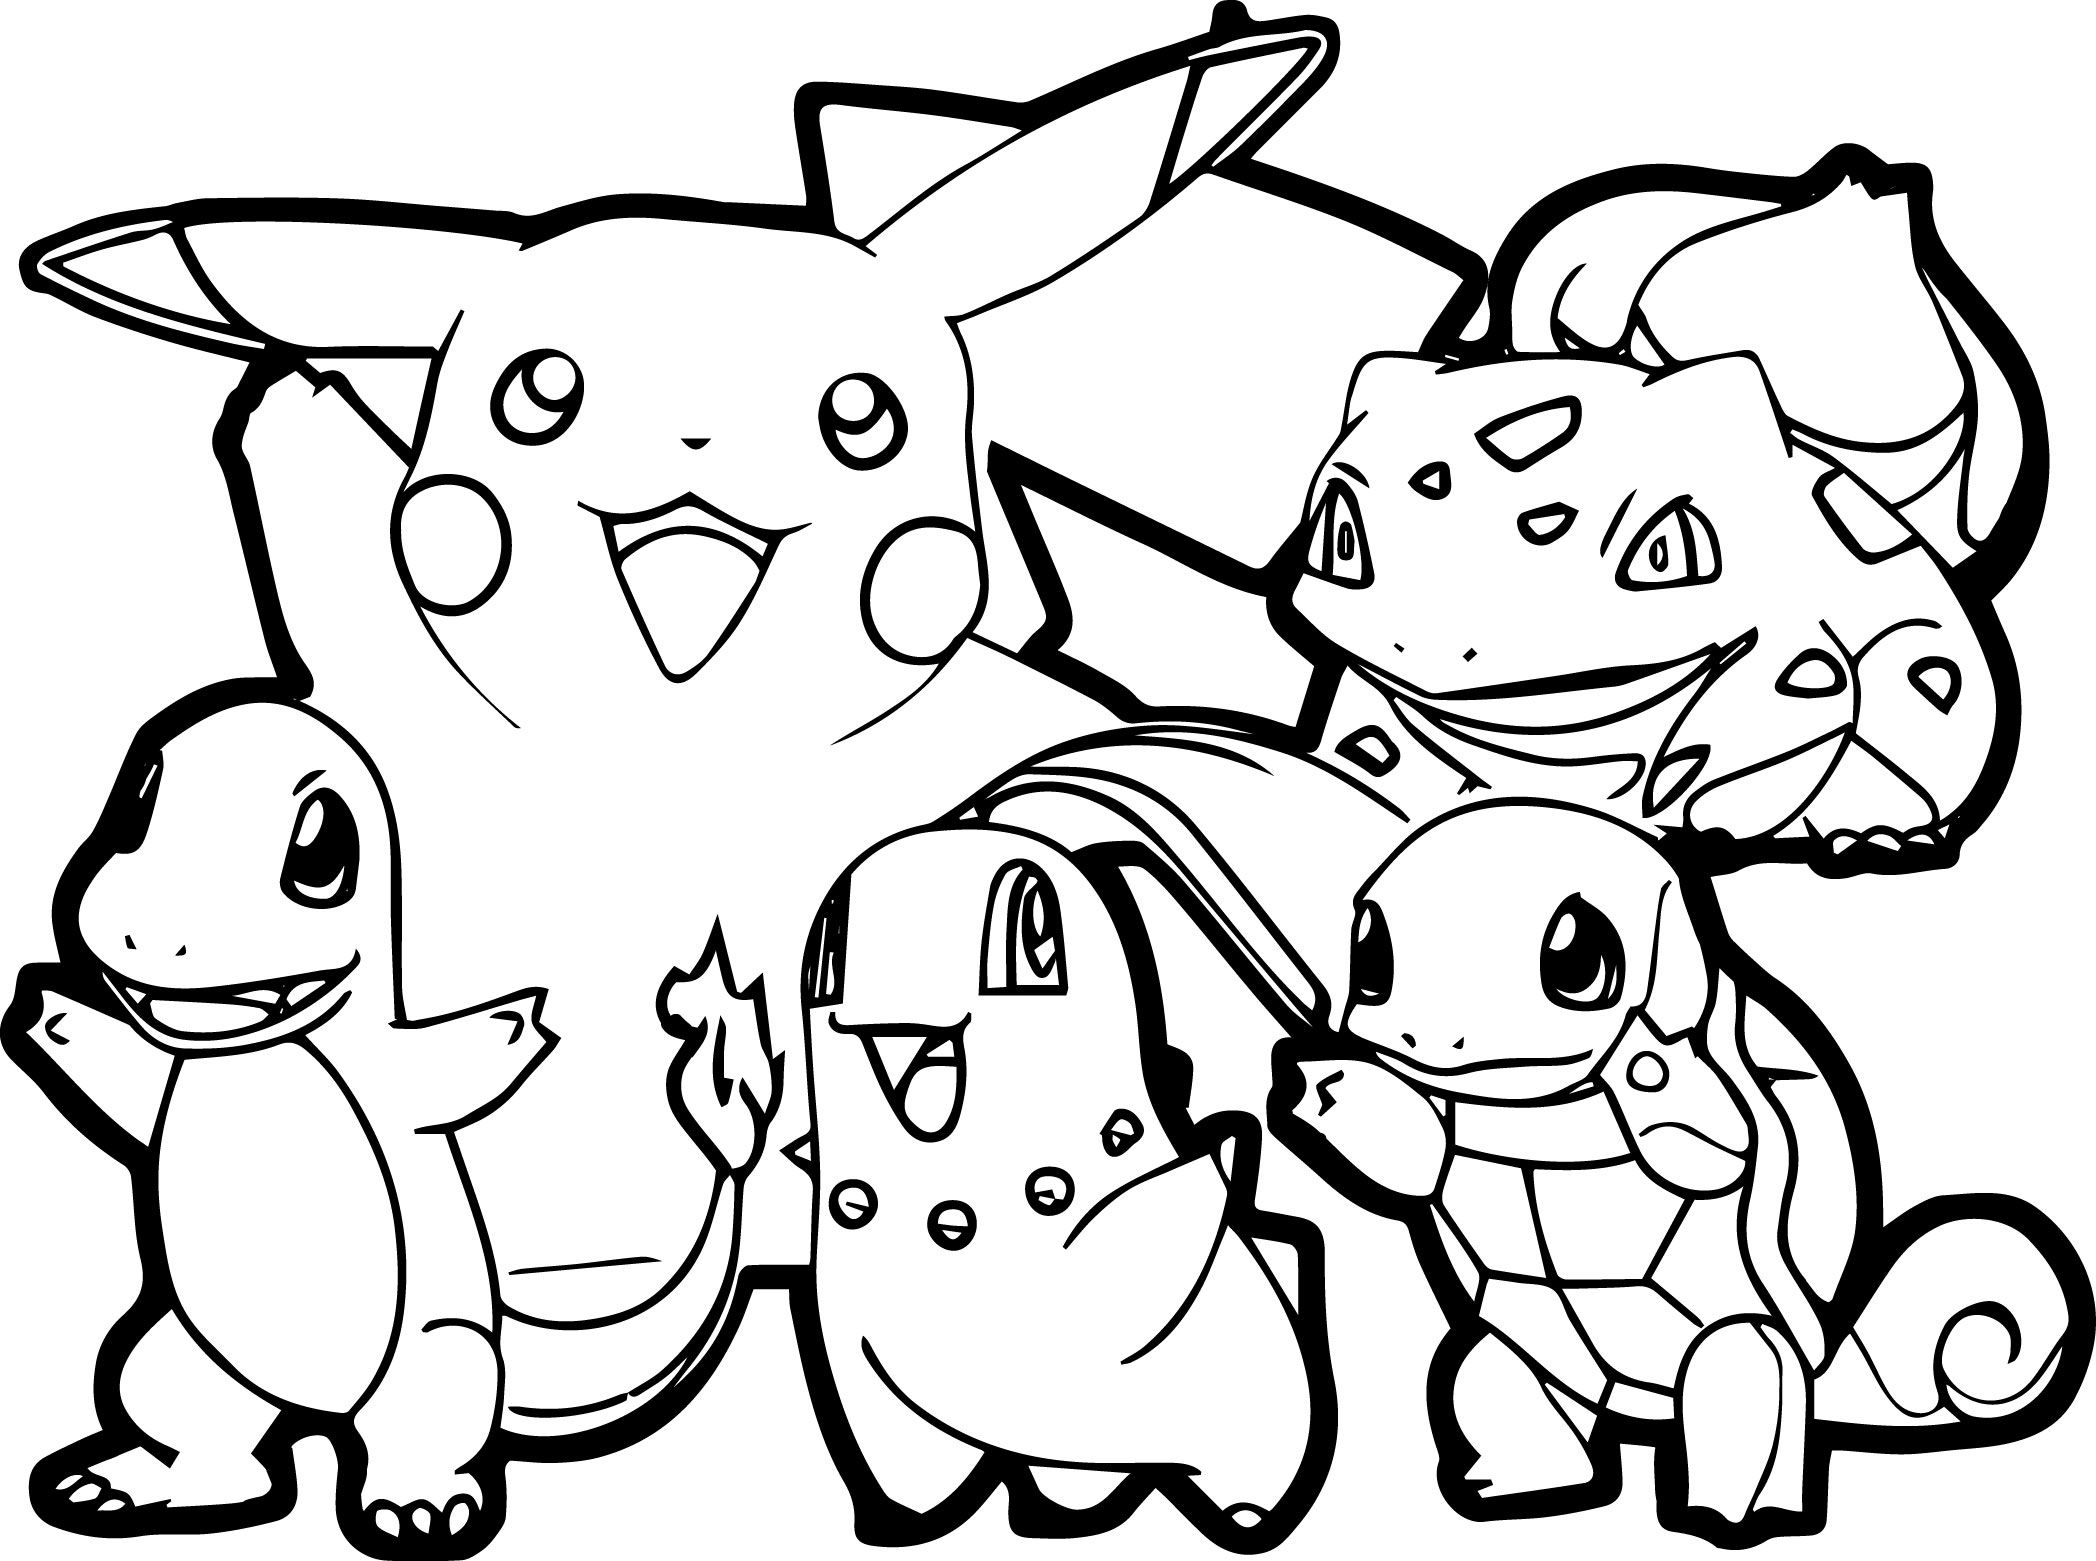 real life pokemon coloring pages - photo#38